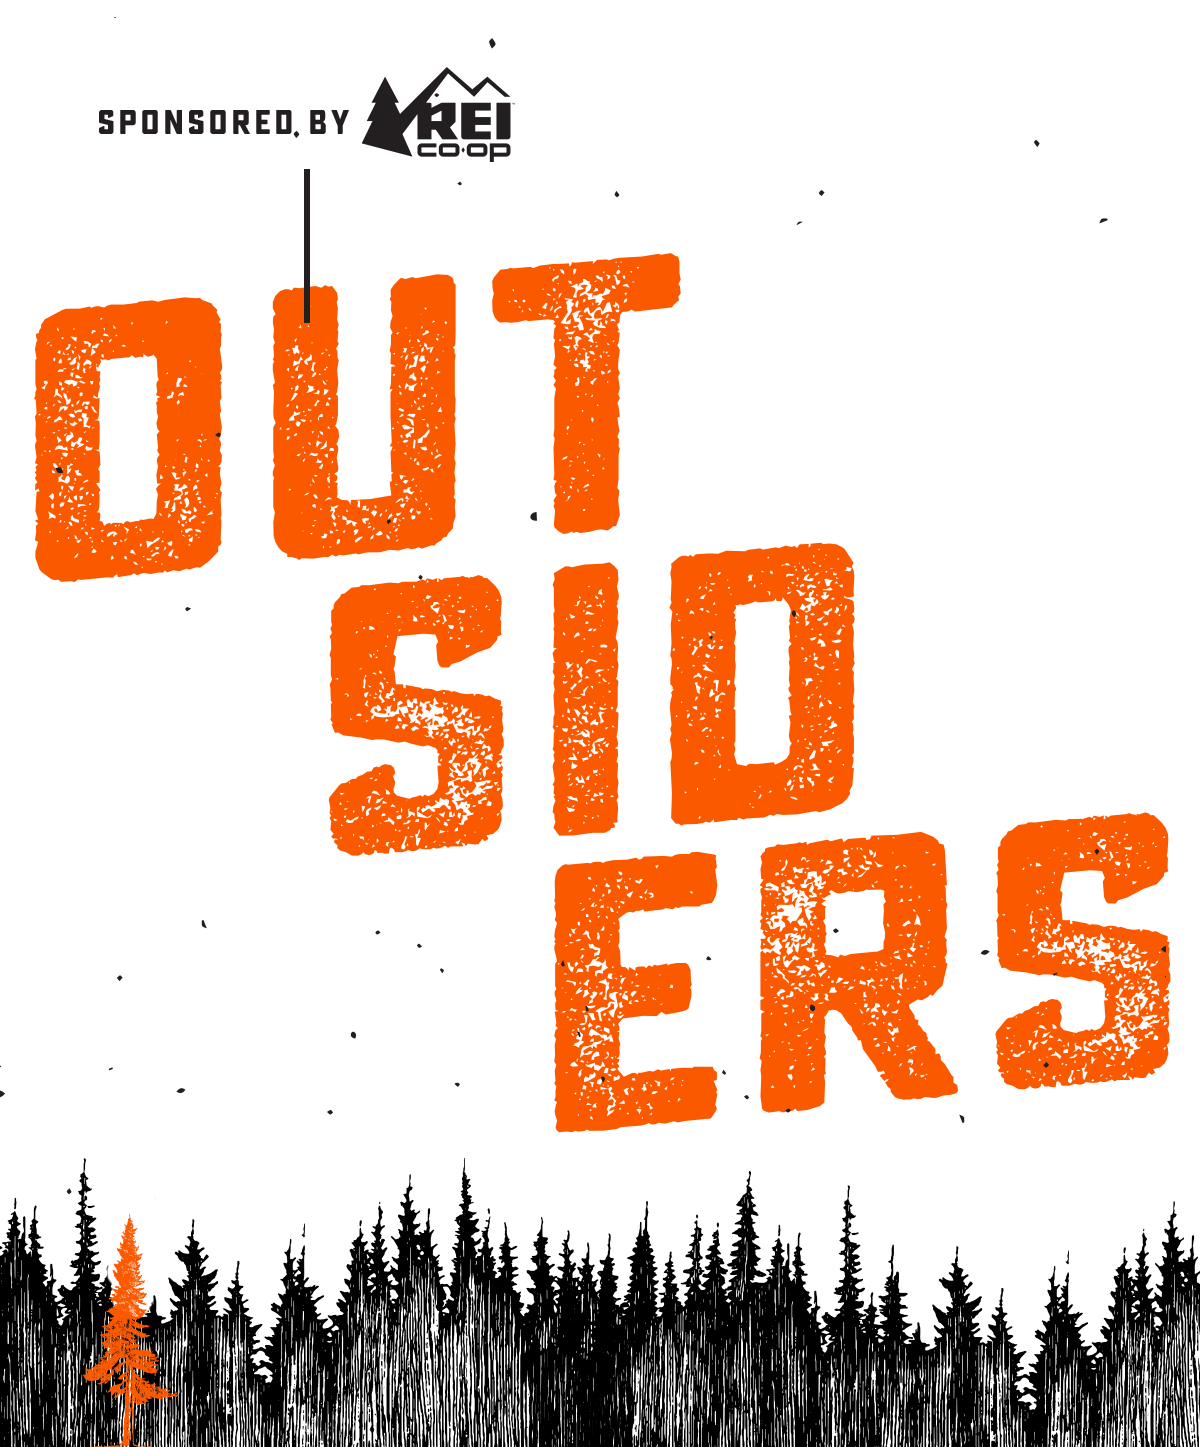 OUTSIDERS - Sponsored by REI